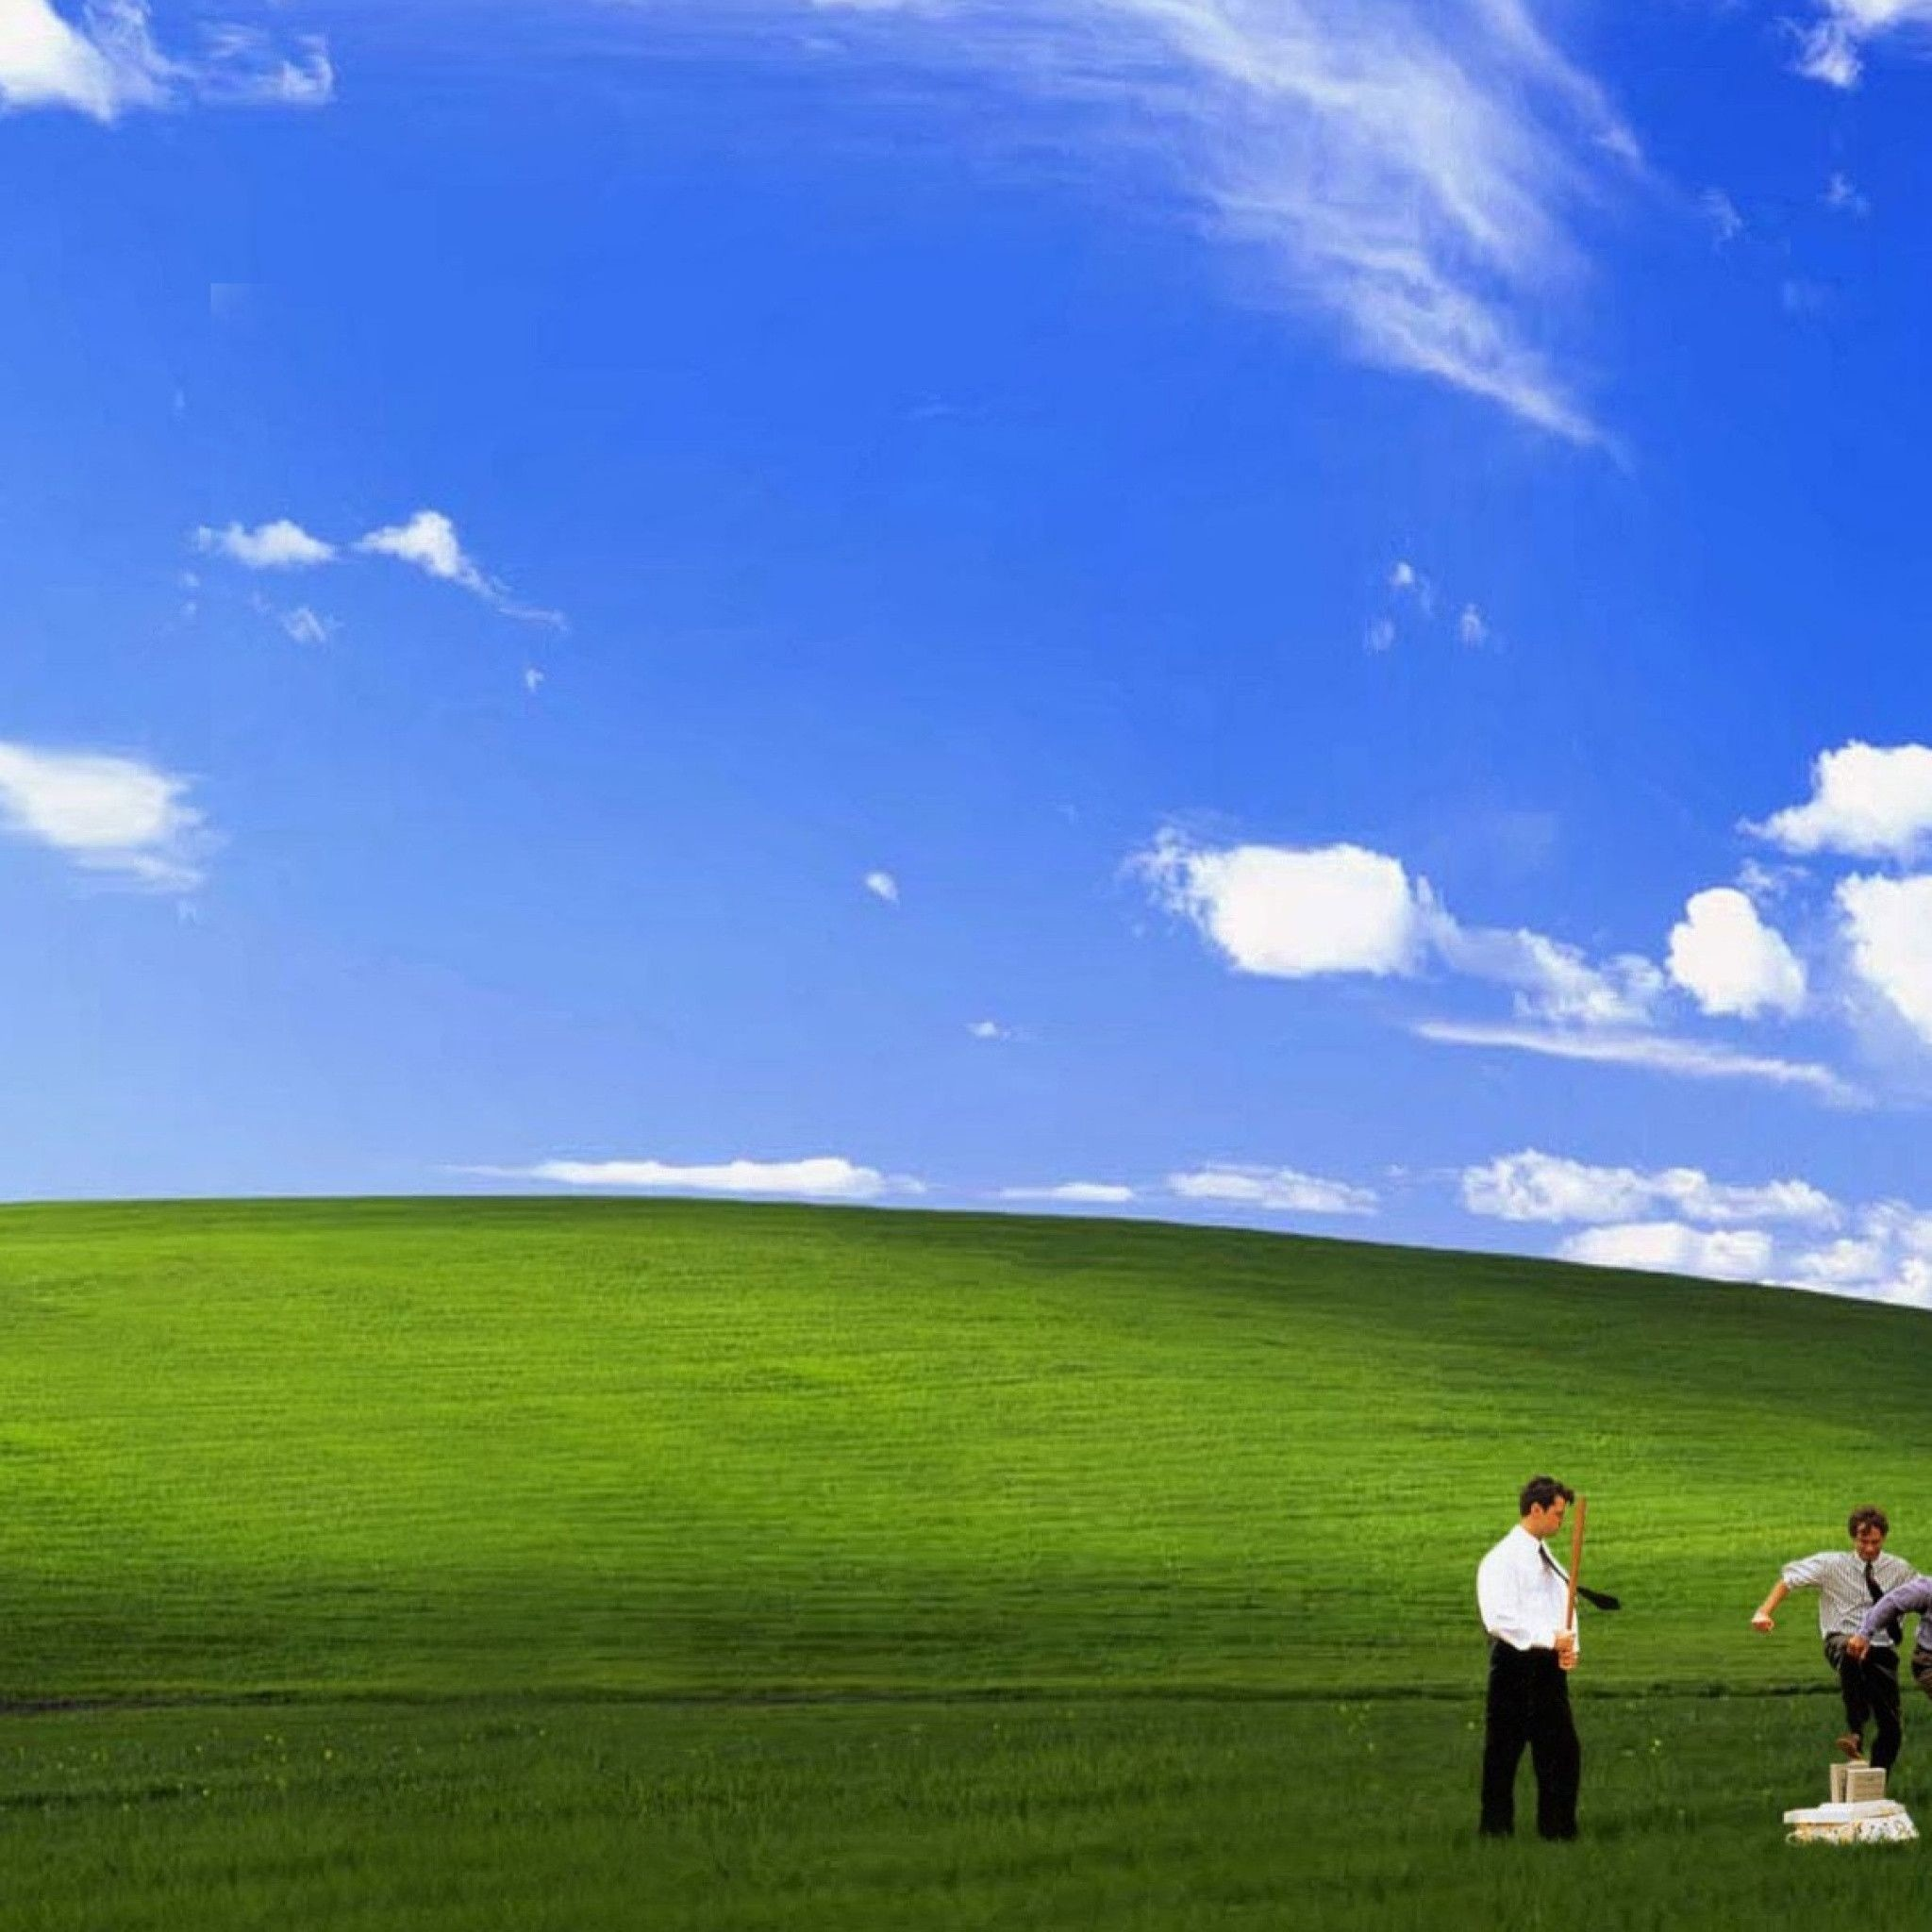 2048x2048 Windows XP Wallpapers Bliss - Wallpaper Cave